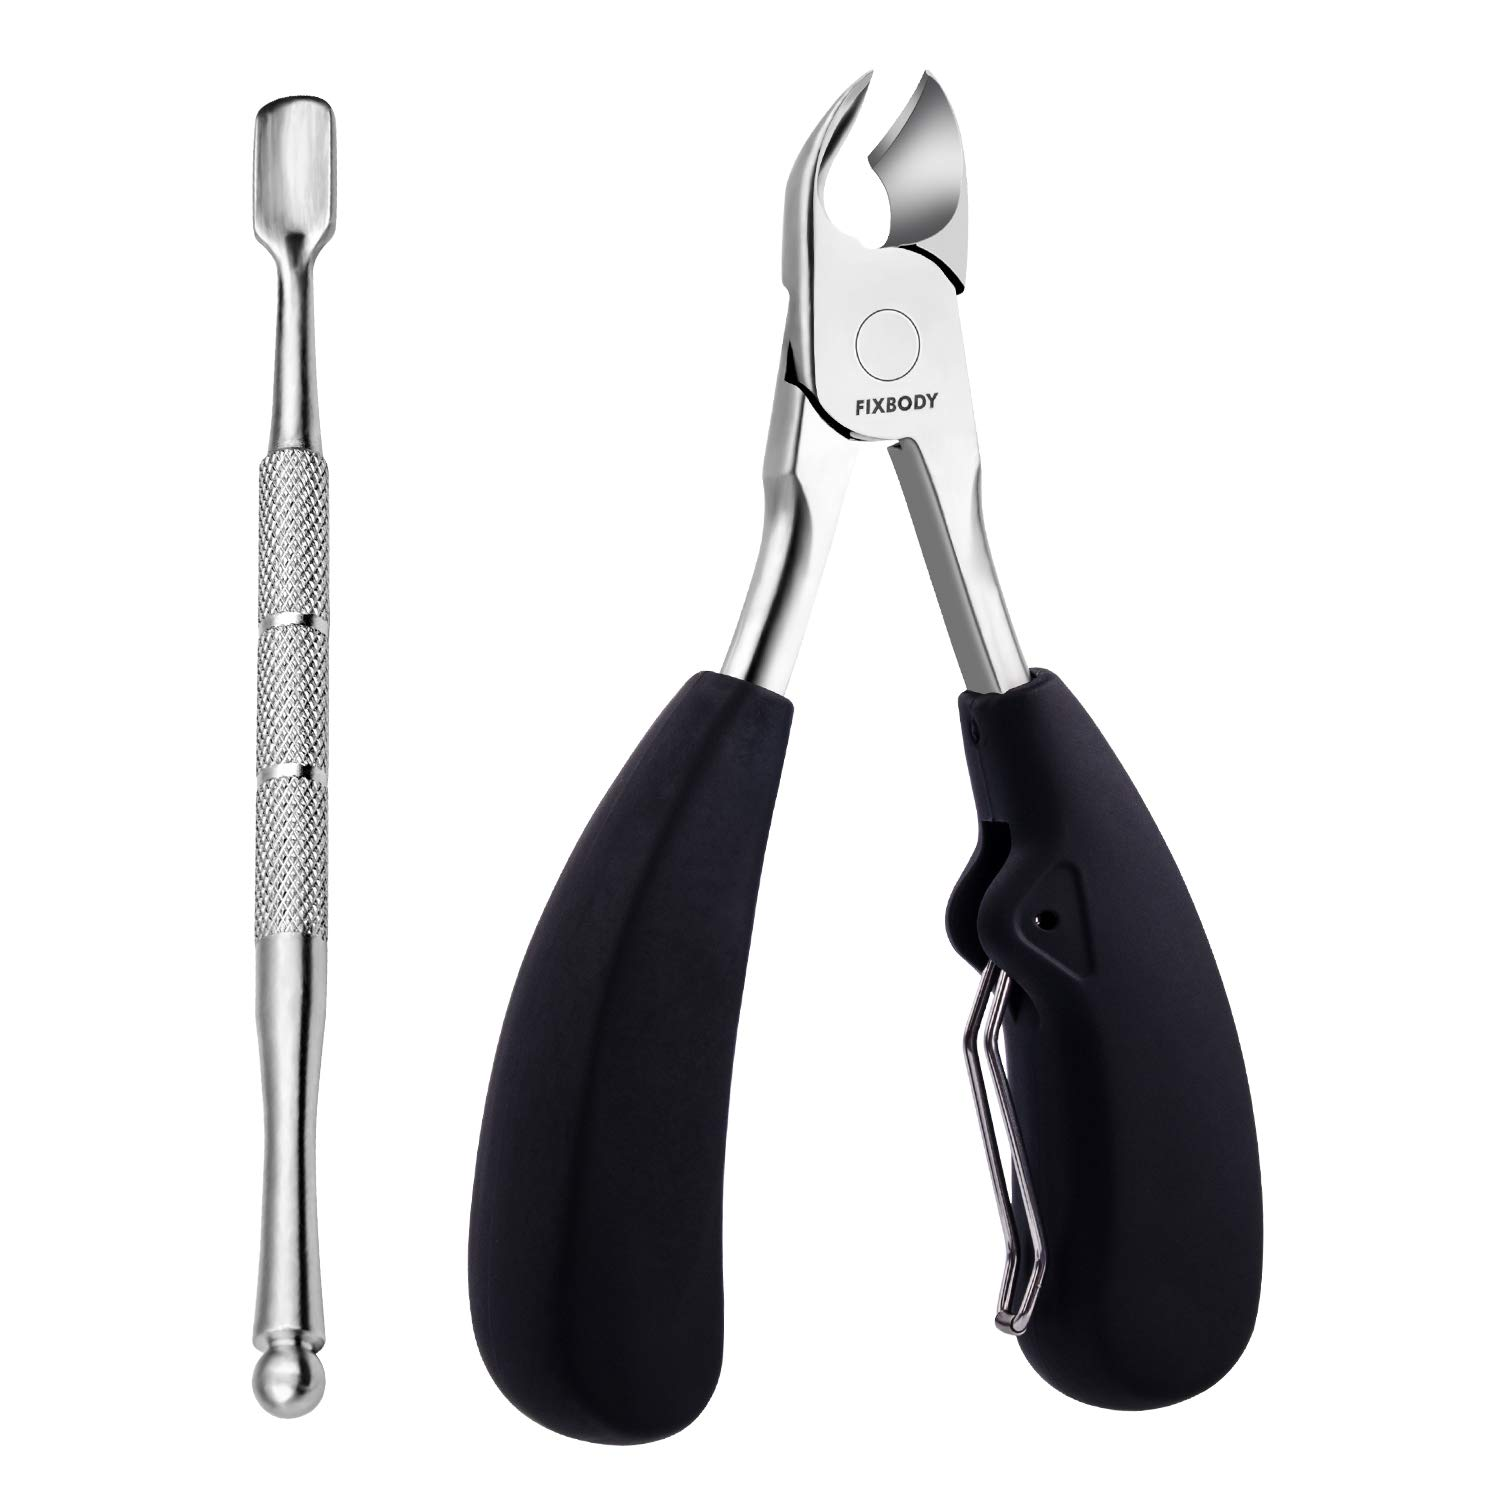 FIXBODY Professional Fingernail & Toenail Clipper 2 PCS Tool for Thick or Ingrown Toenails - Heavy Duty Stainless Steel & Easy Grip